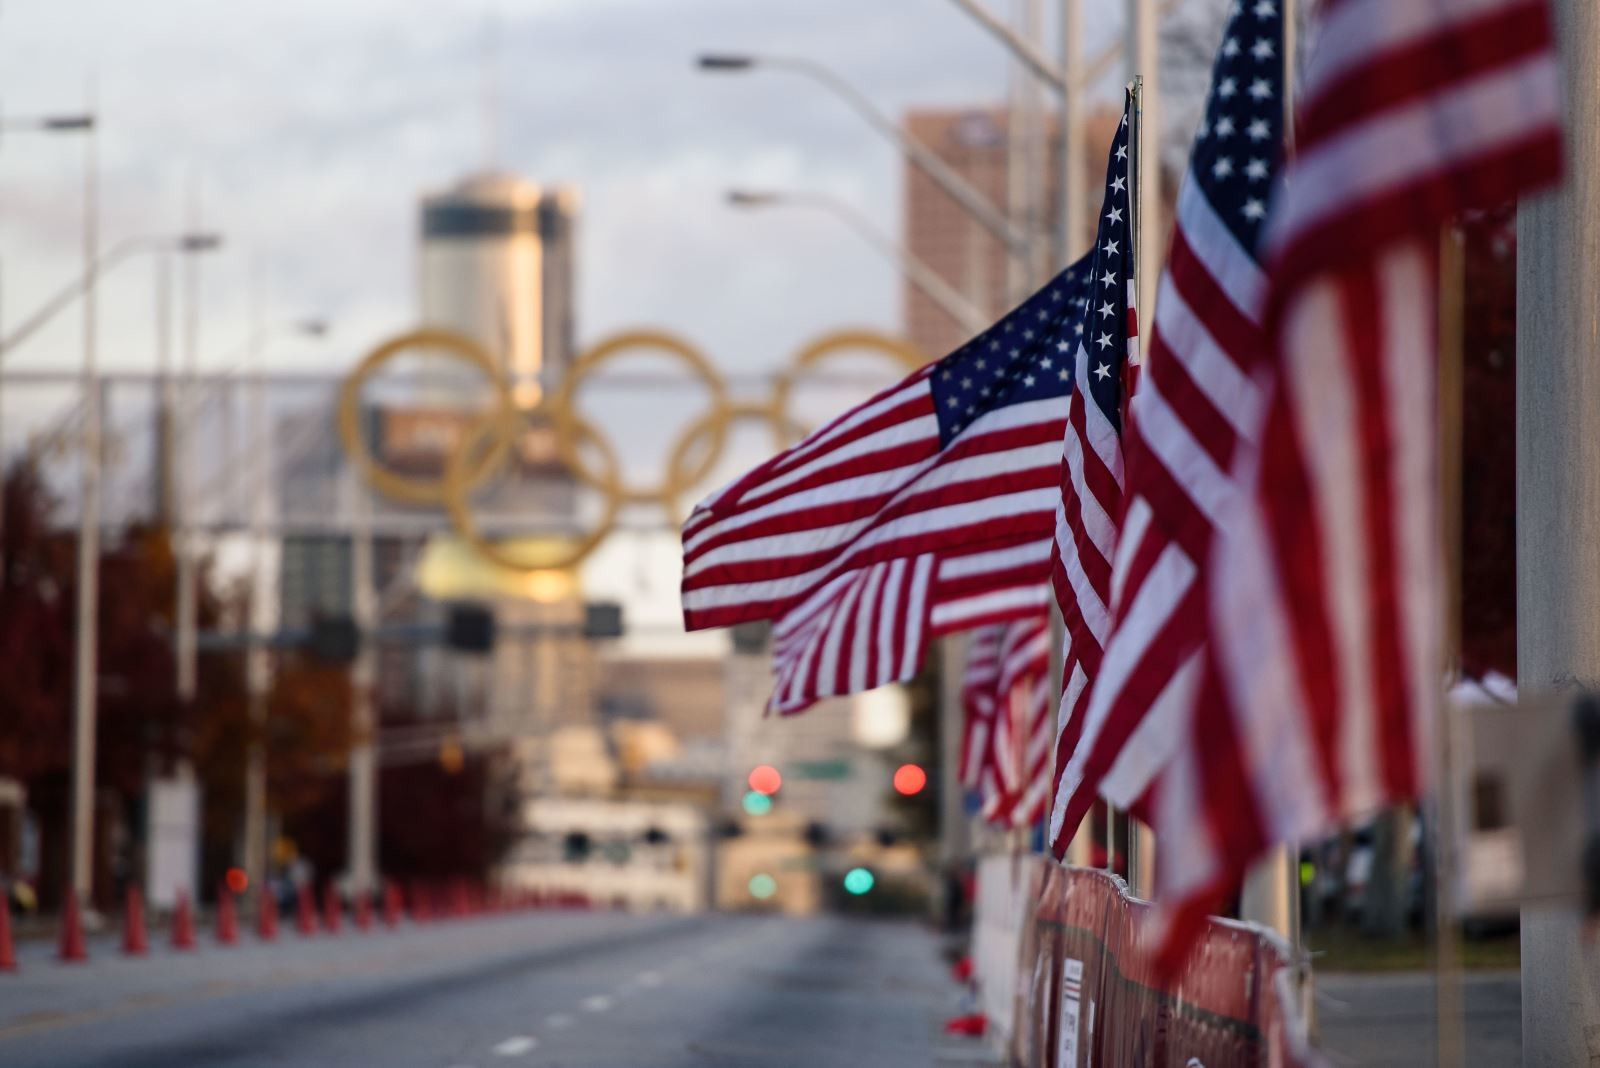 Is Atlanta going to be the site of the 2020 US Olympic Team Marathon Trials?